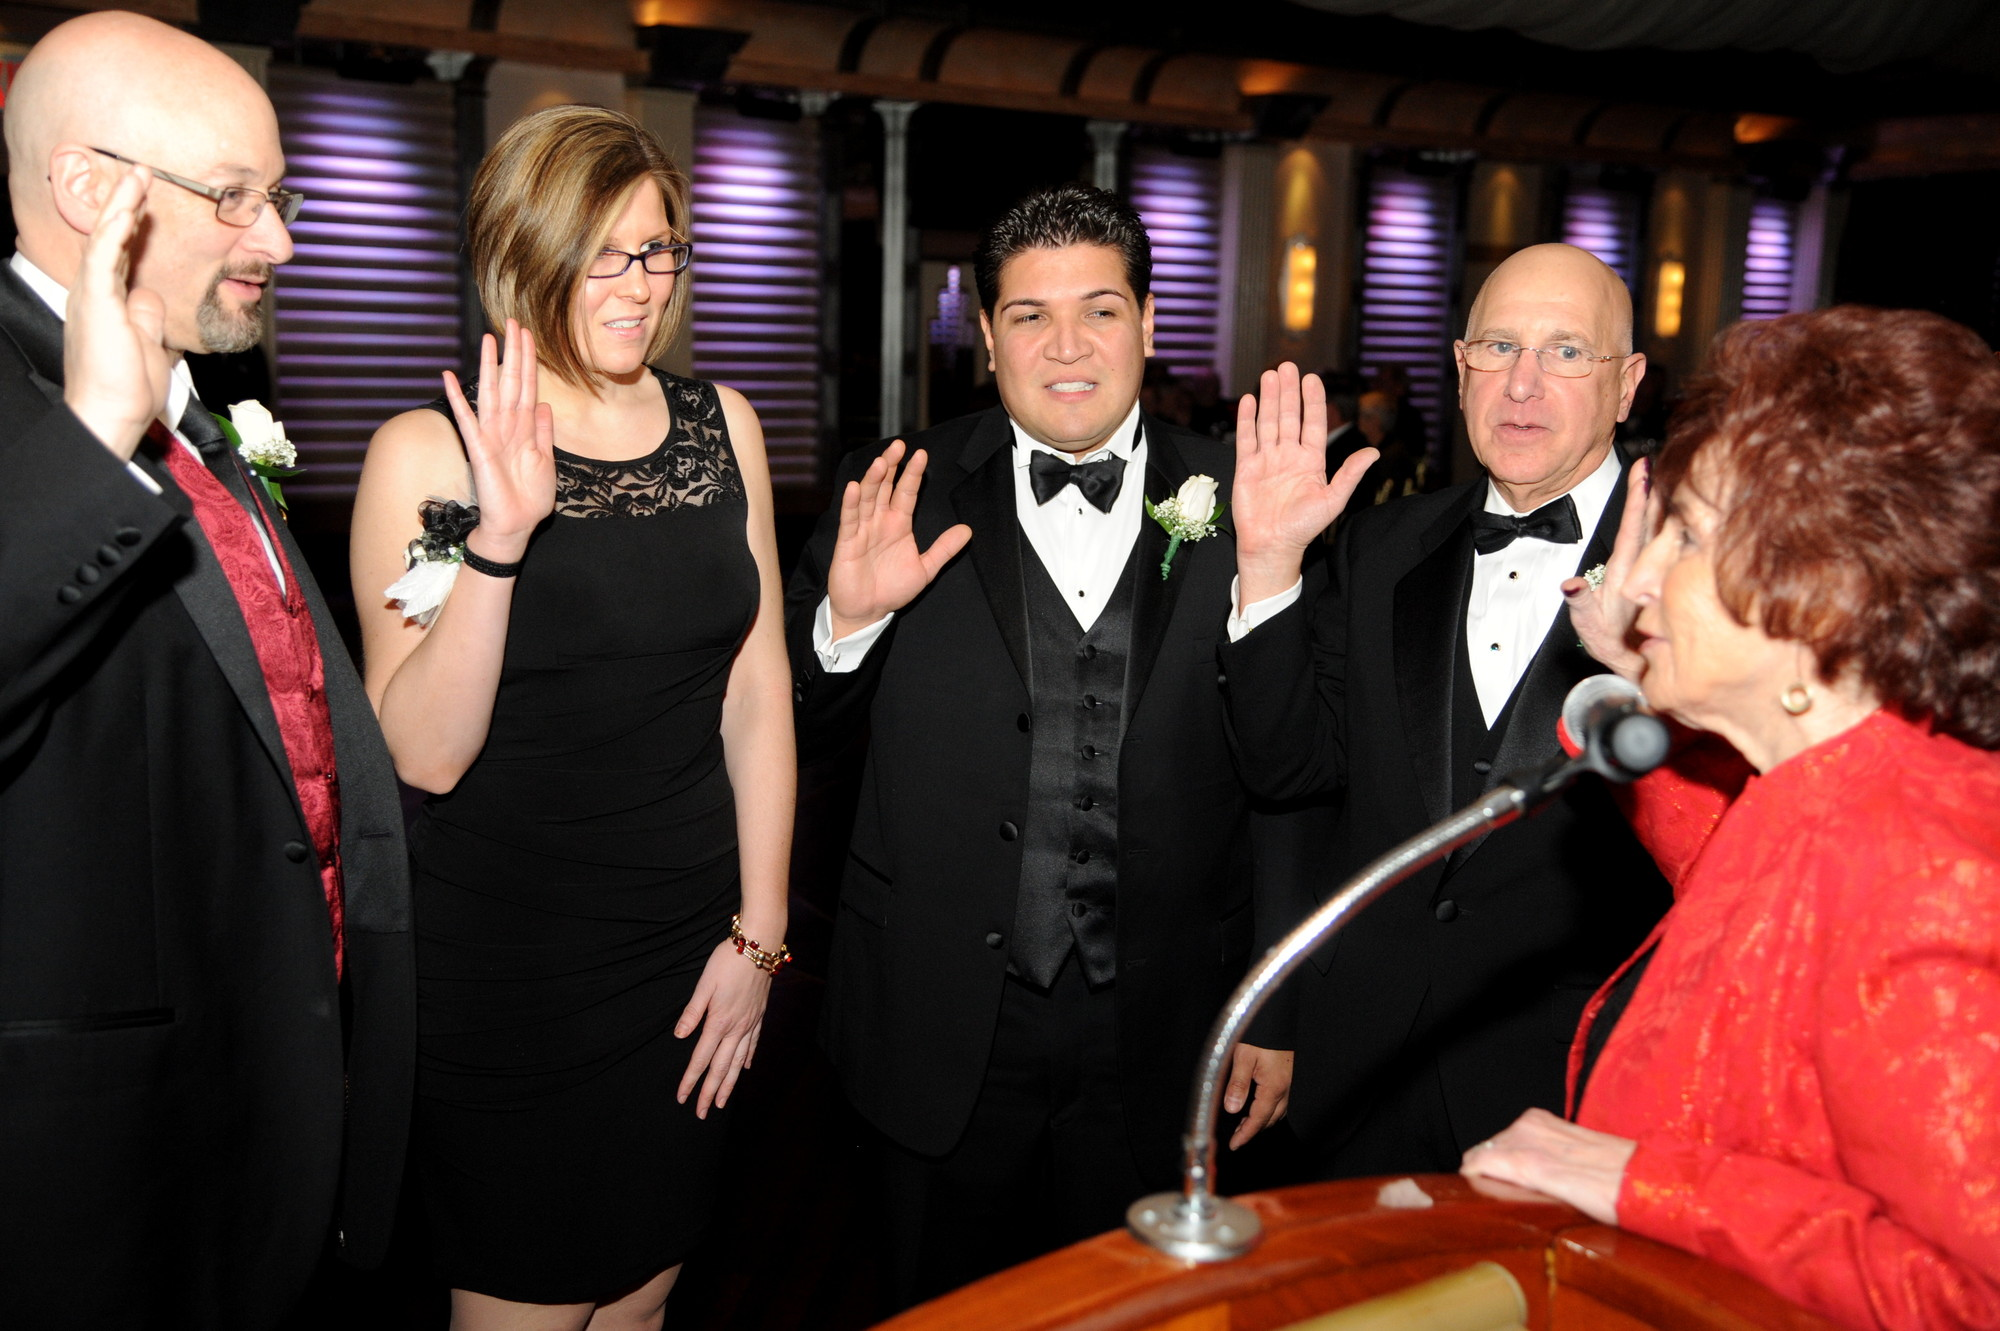 Nassau County Legislature Presiding Officer Norma Gonsalves swore in officers Mitchell Allen, left, Lyndsey Gallagher, Will Miranda and Warren Kalmenson during the dinner.